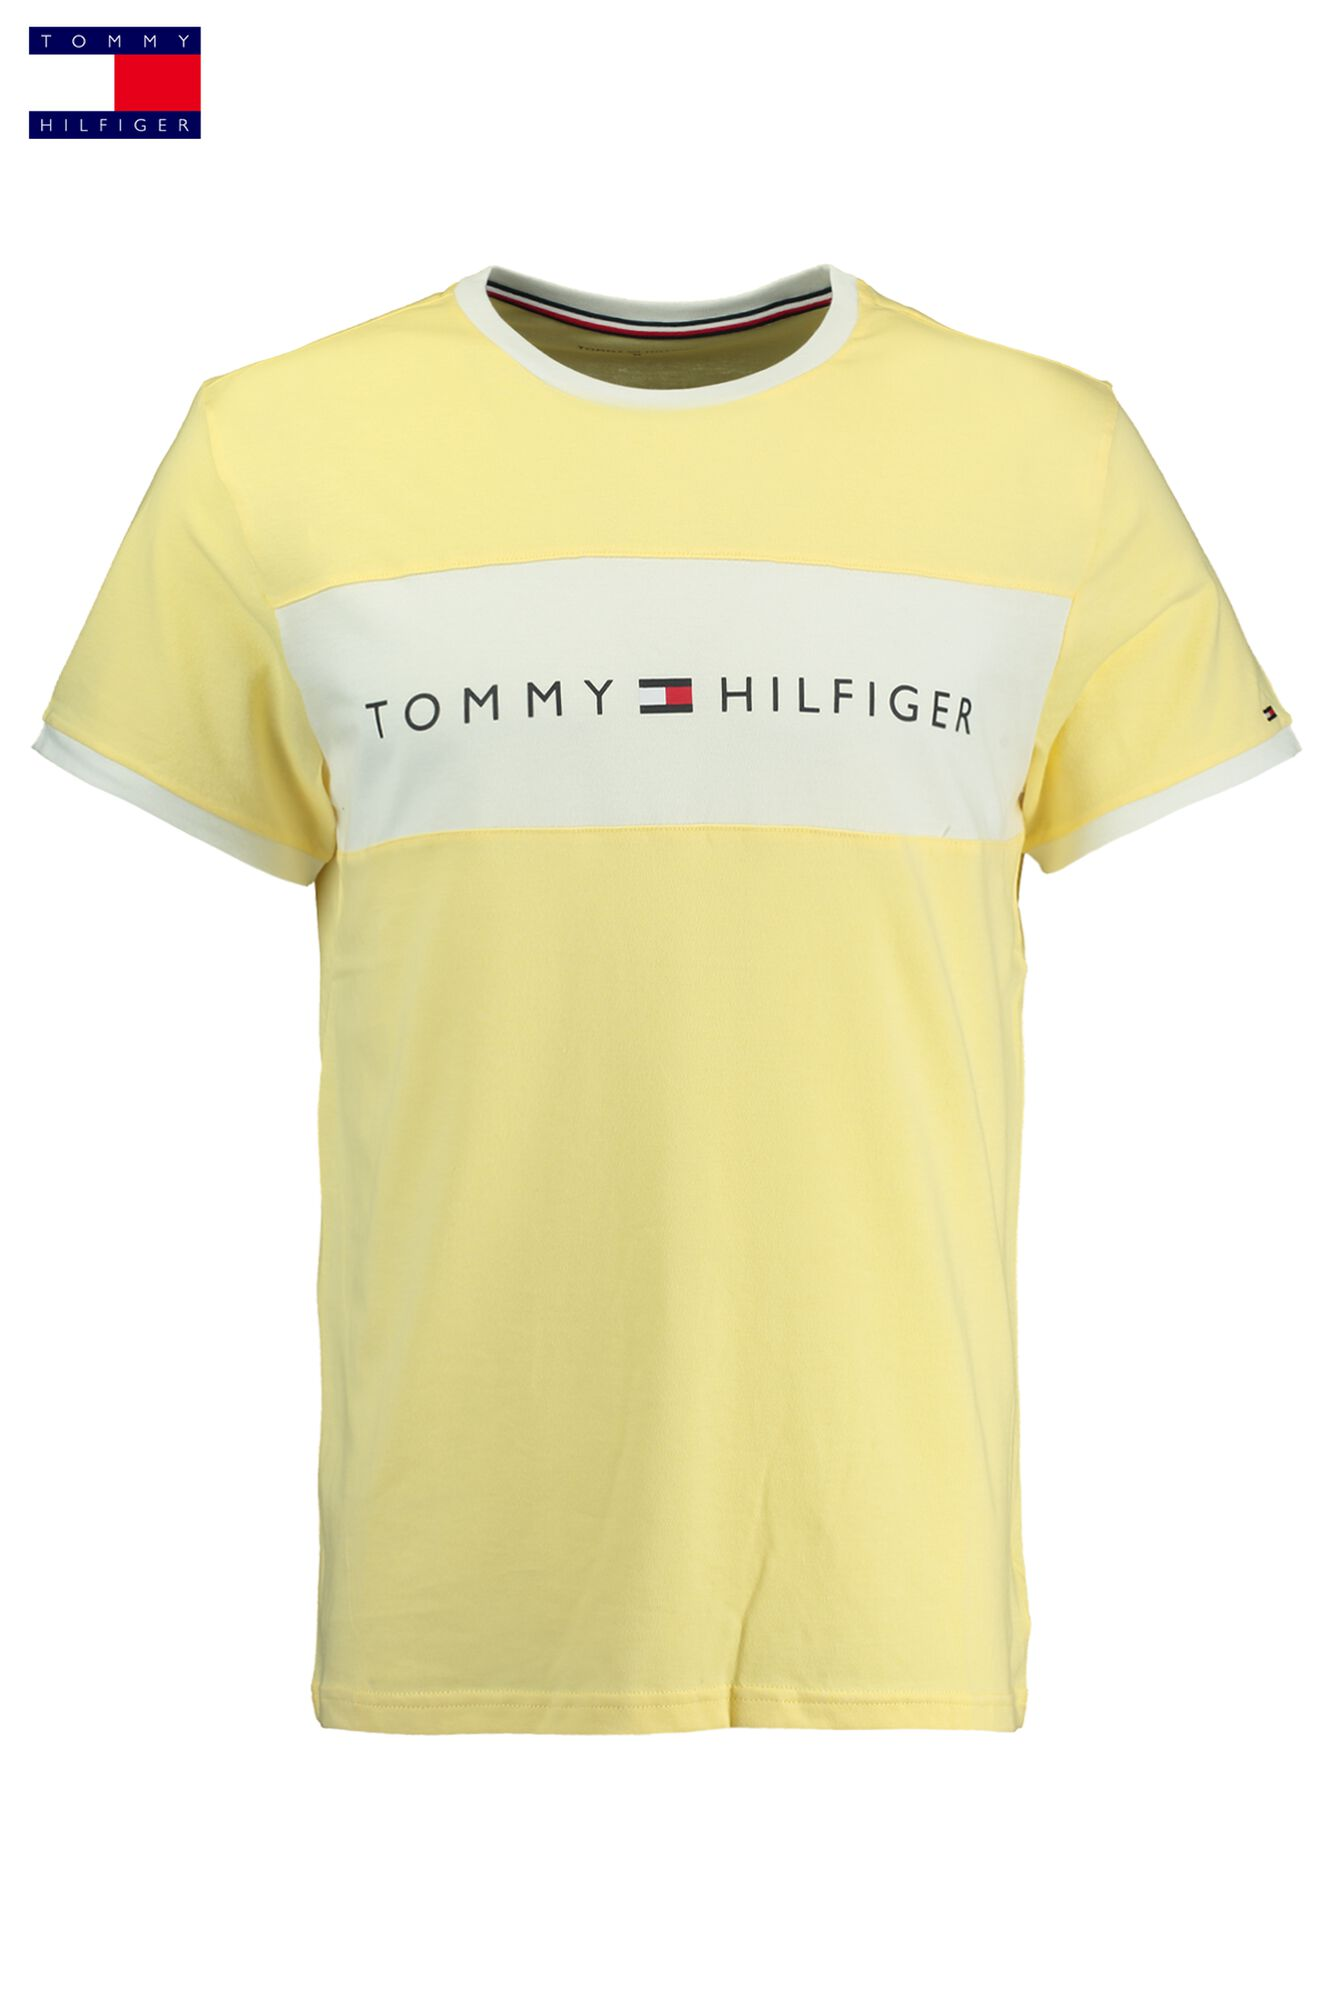 san francisco 24179 b23f4 Men T-shirt Tommy Hilfiger Logo Flag Yellow Buy Online